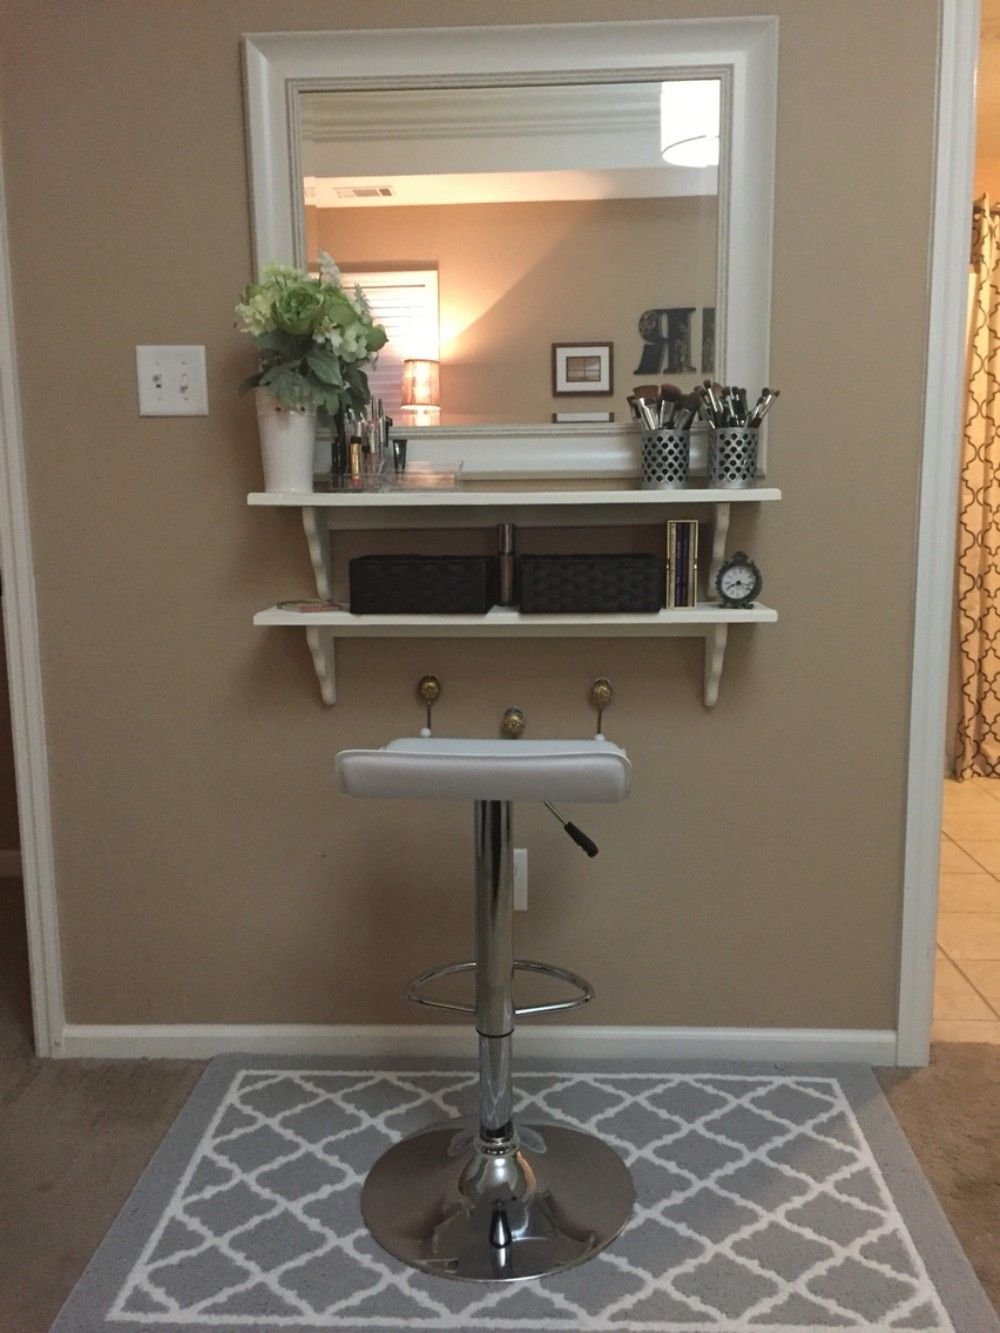 33 Floating Vanity Shelves, Space Saving Ideas For Your